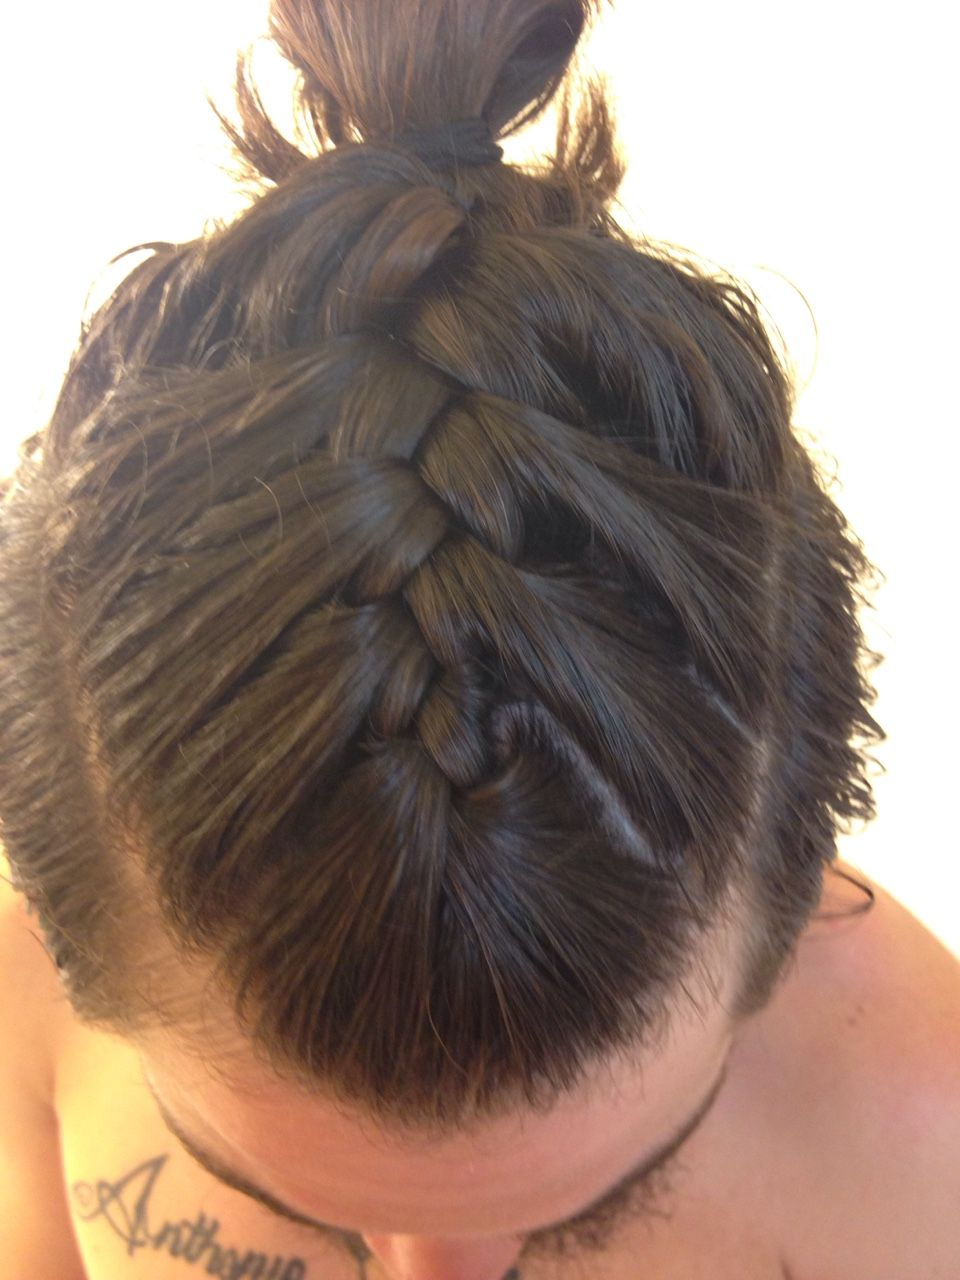 1000 Images About Coiffure On Pinterest Follow Me Top Knot Men